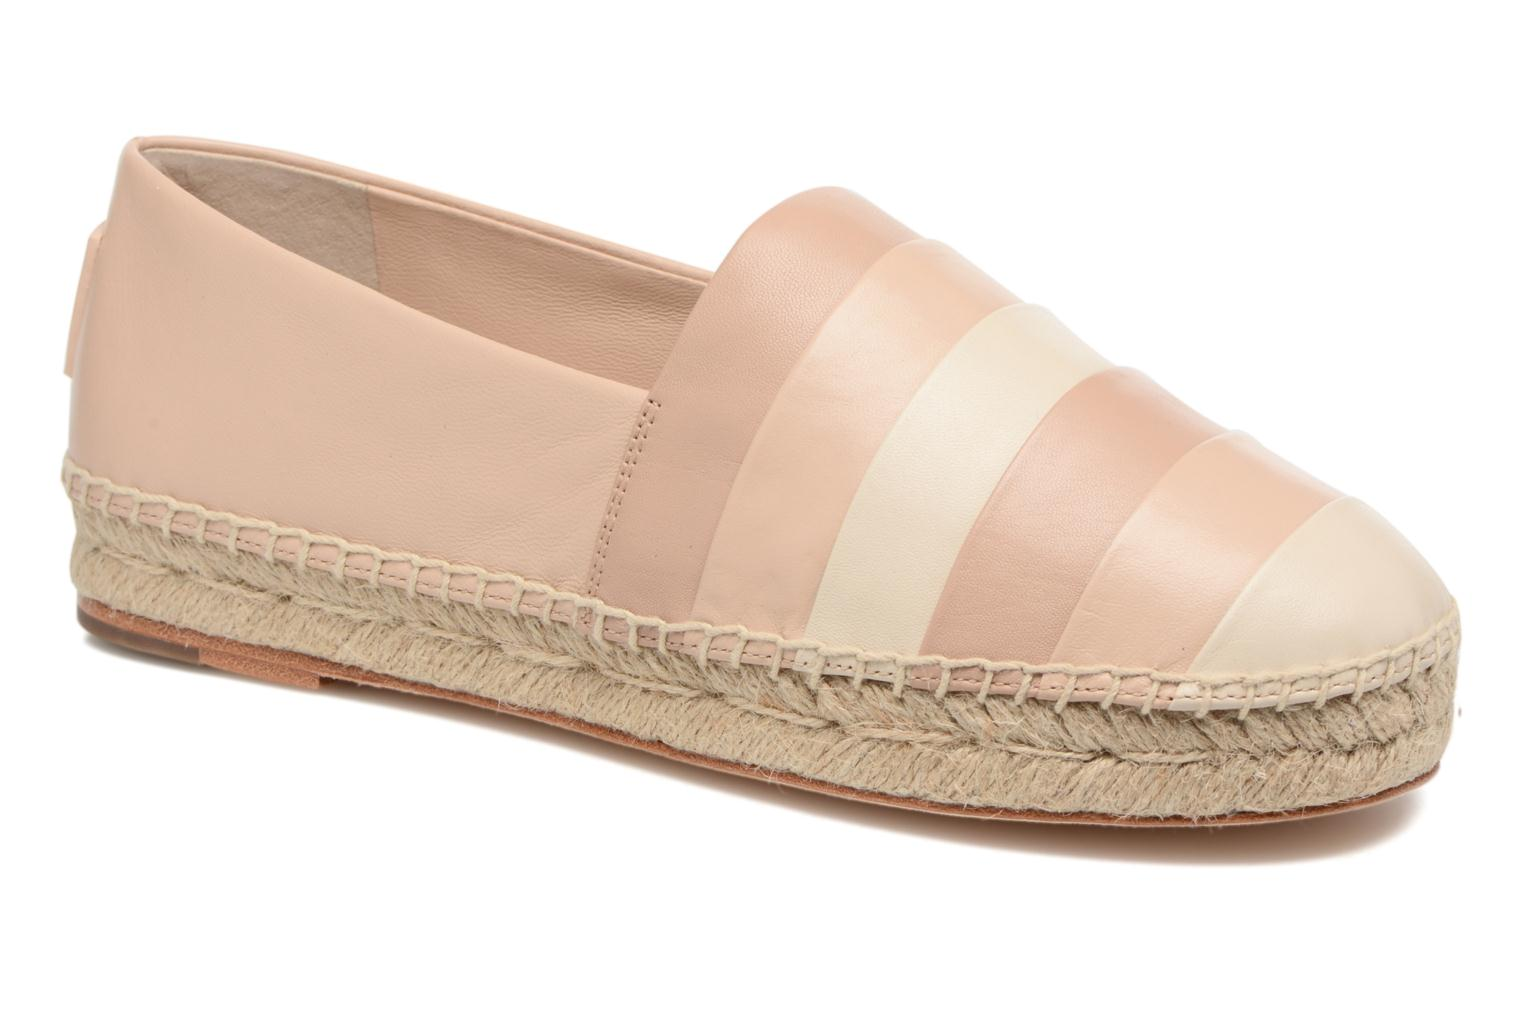 espadrilles-ariahna-espadrille-by-opening-ceremony